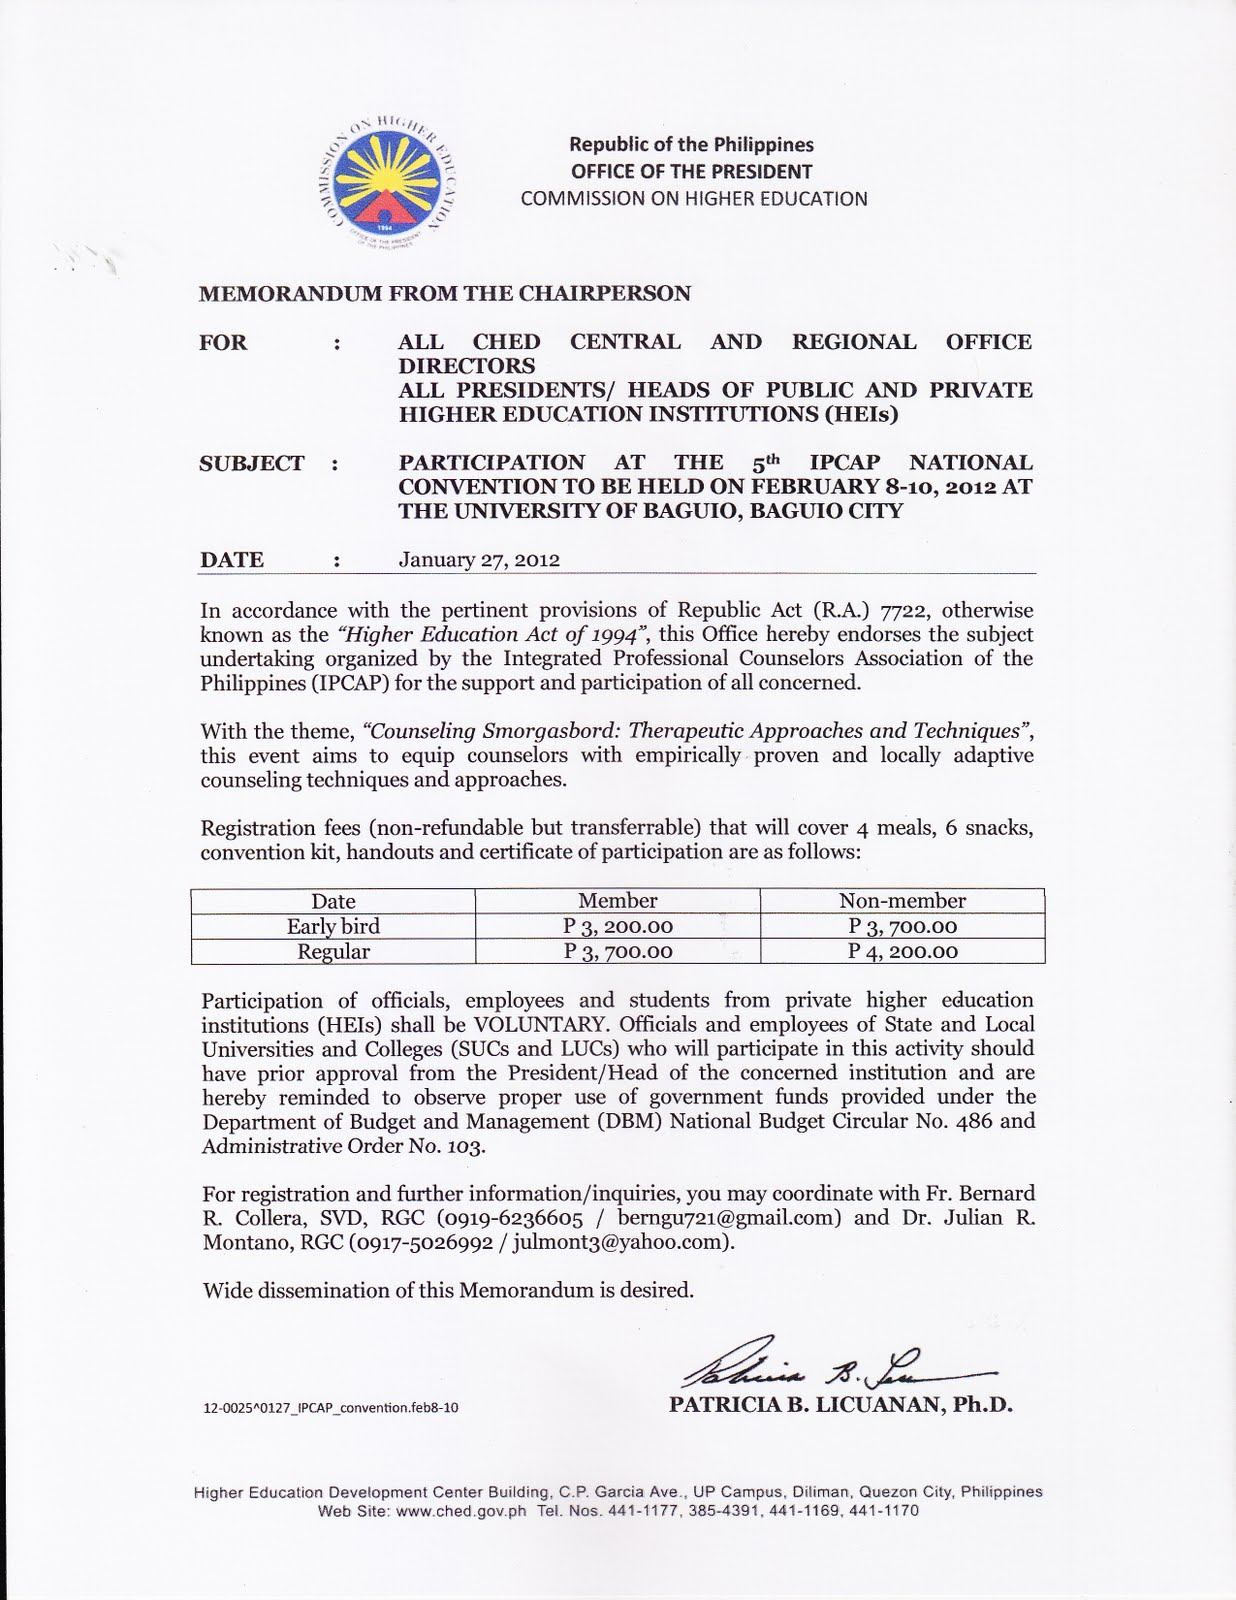 Counseling Psychology in the Philippines: CHED Memo for IPCAP 5th